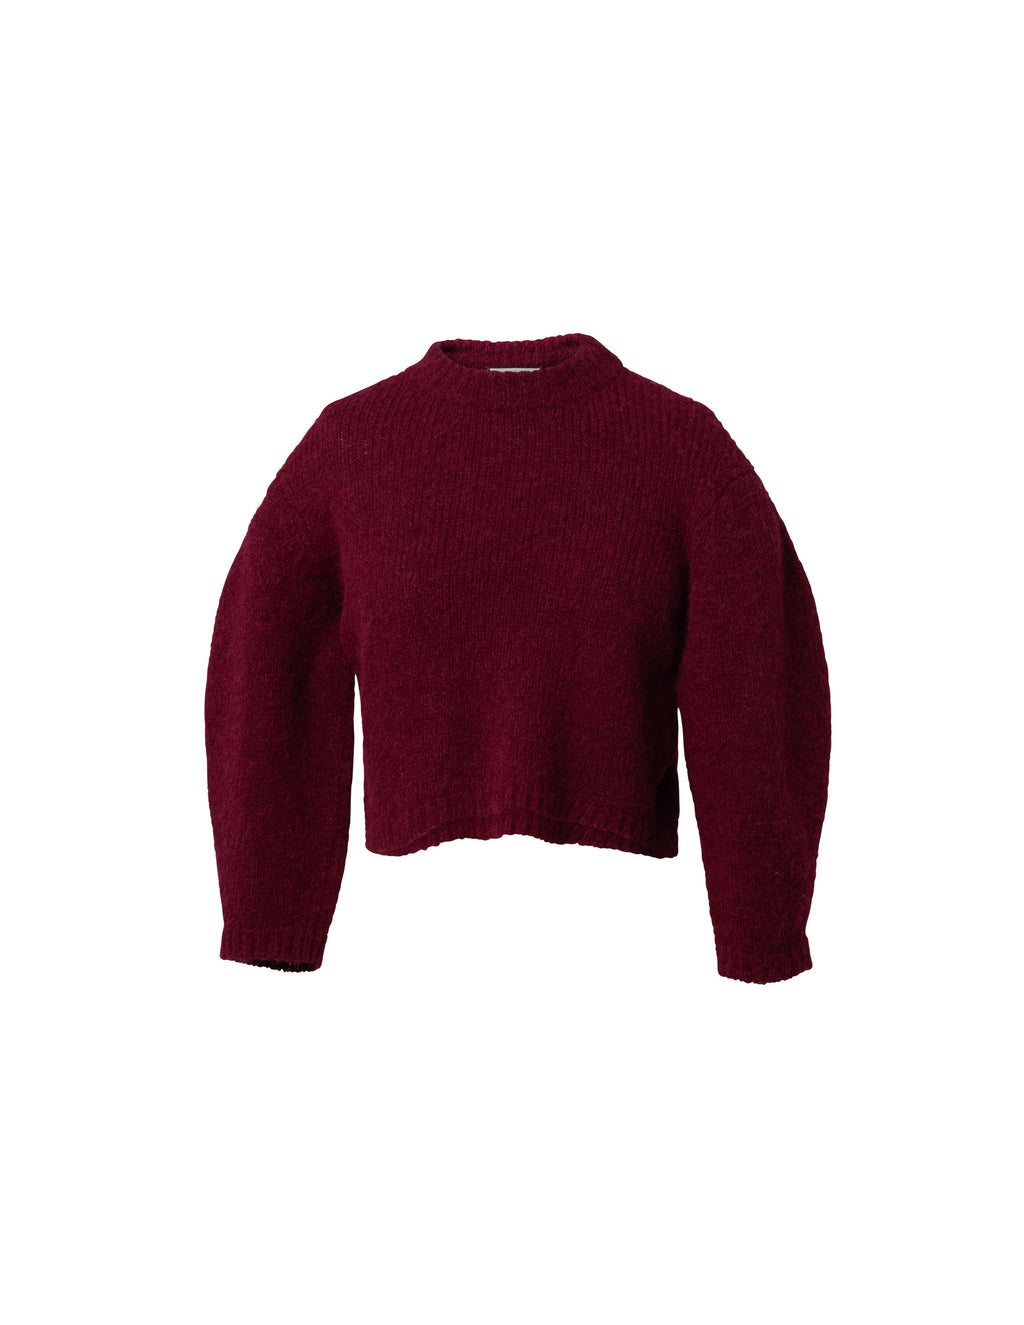 Cozette Cropped Sweater